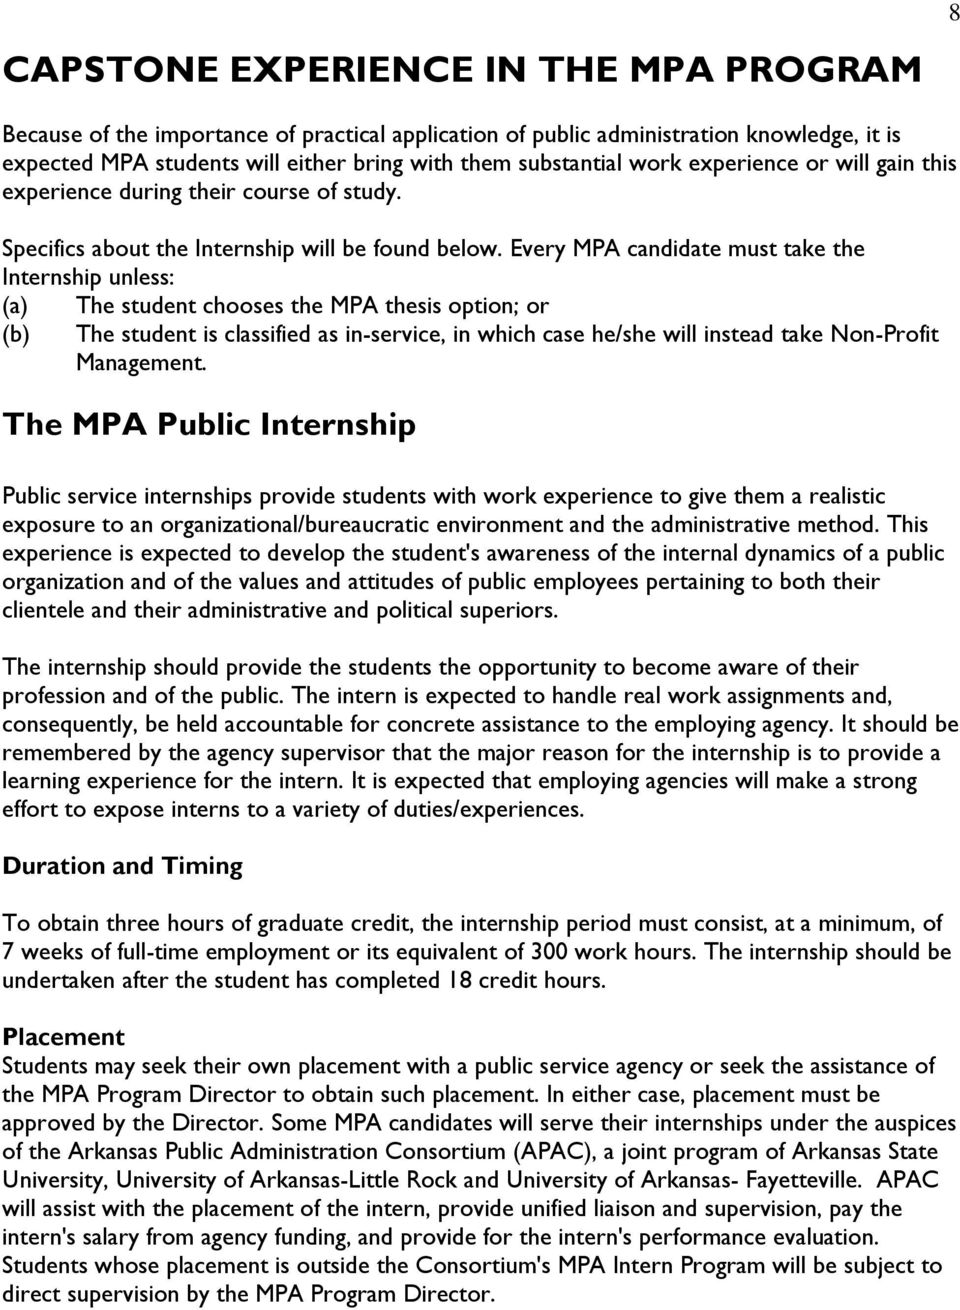 Every MPA candidate must take the Internship unless: (a) The student chooses the MPA thesis option; or (b) The student is classified as in-service, in which case he/she will instead take Non-Profit